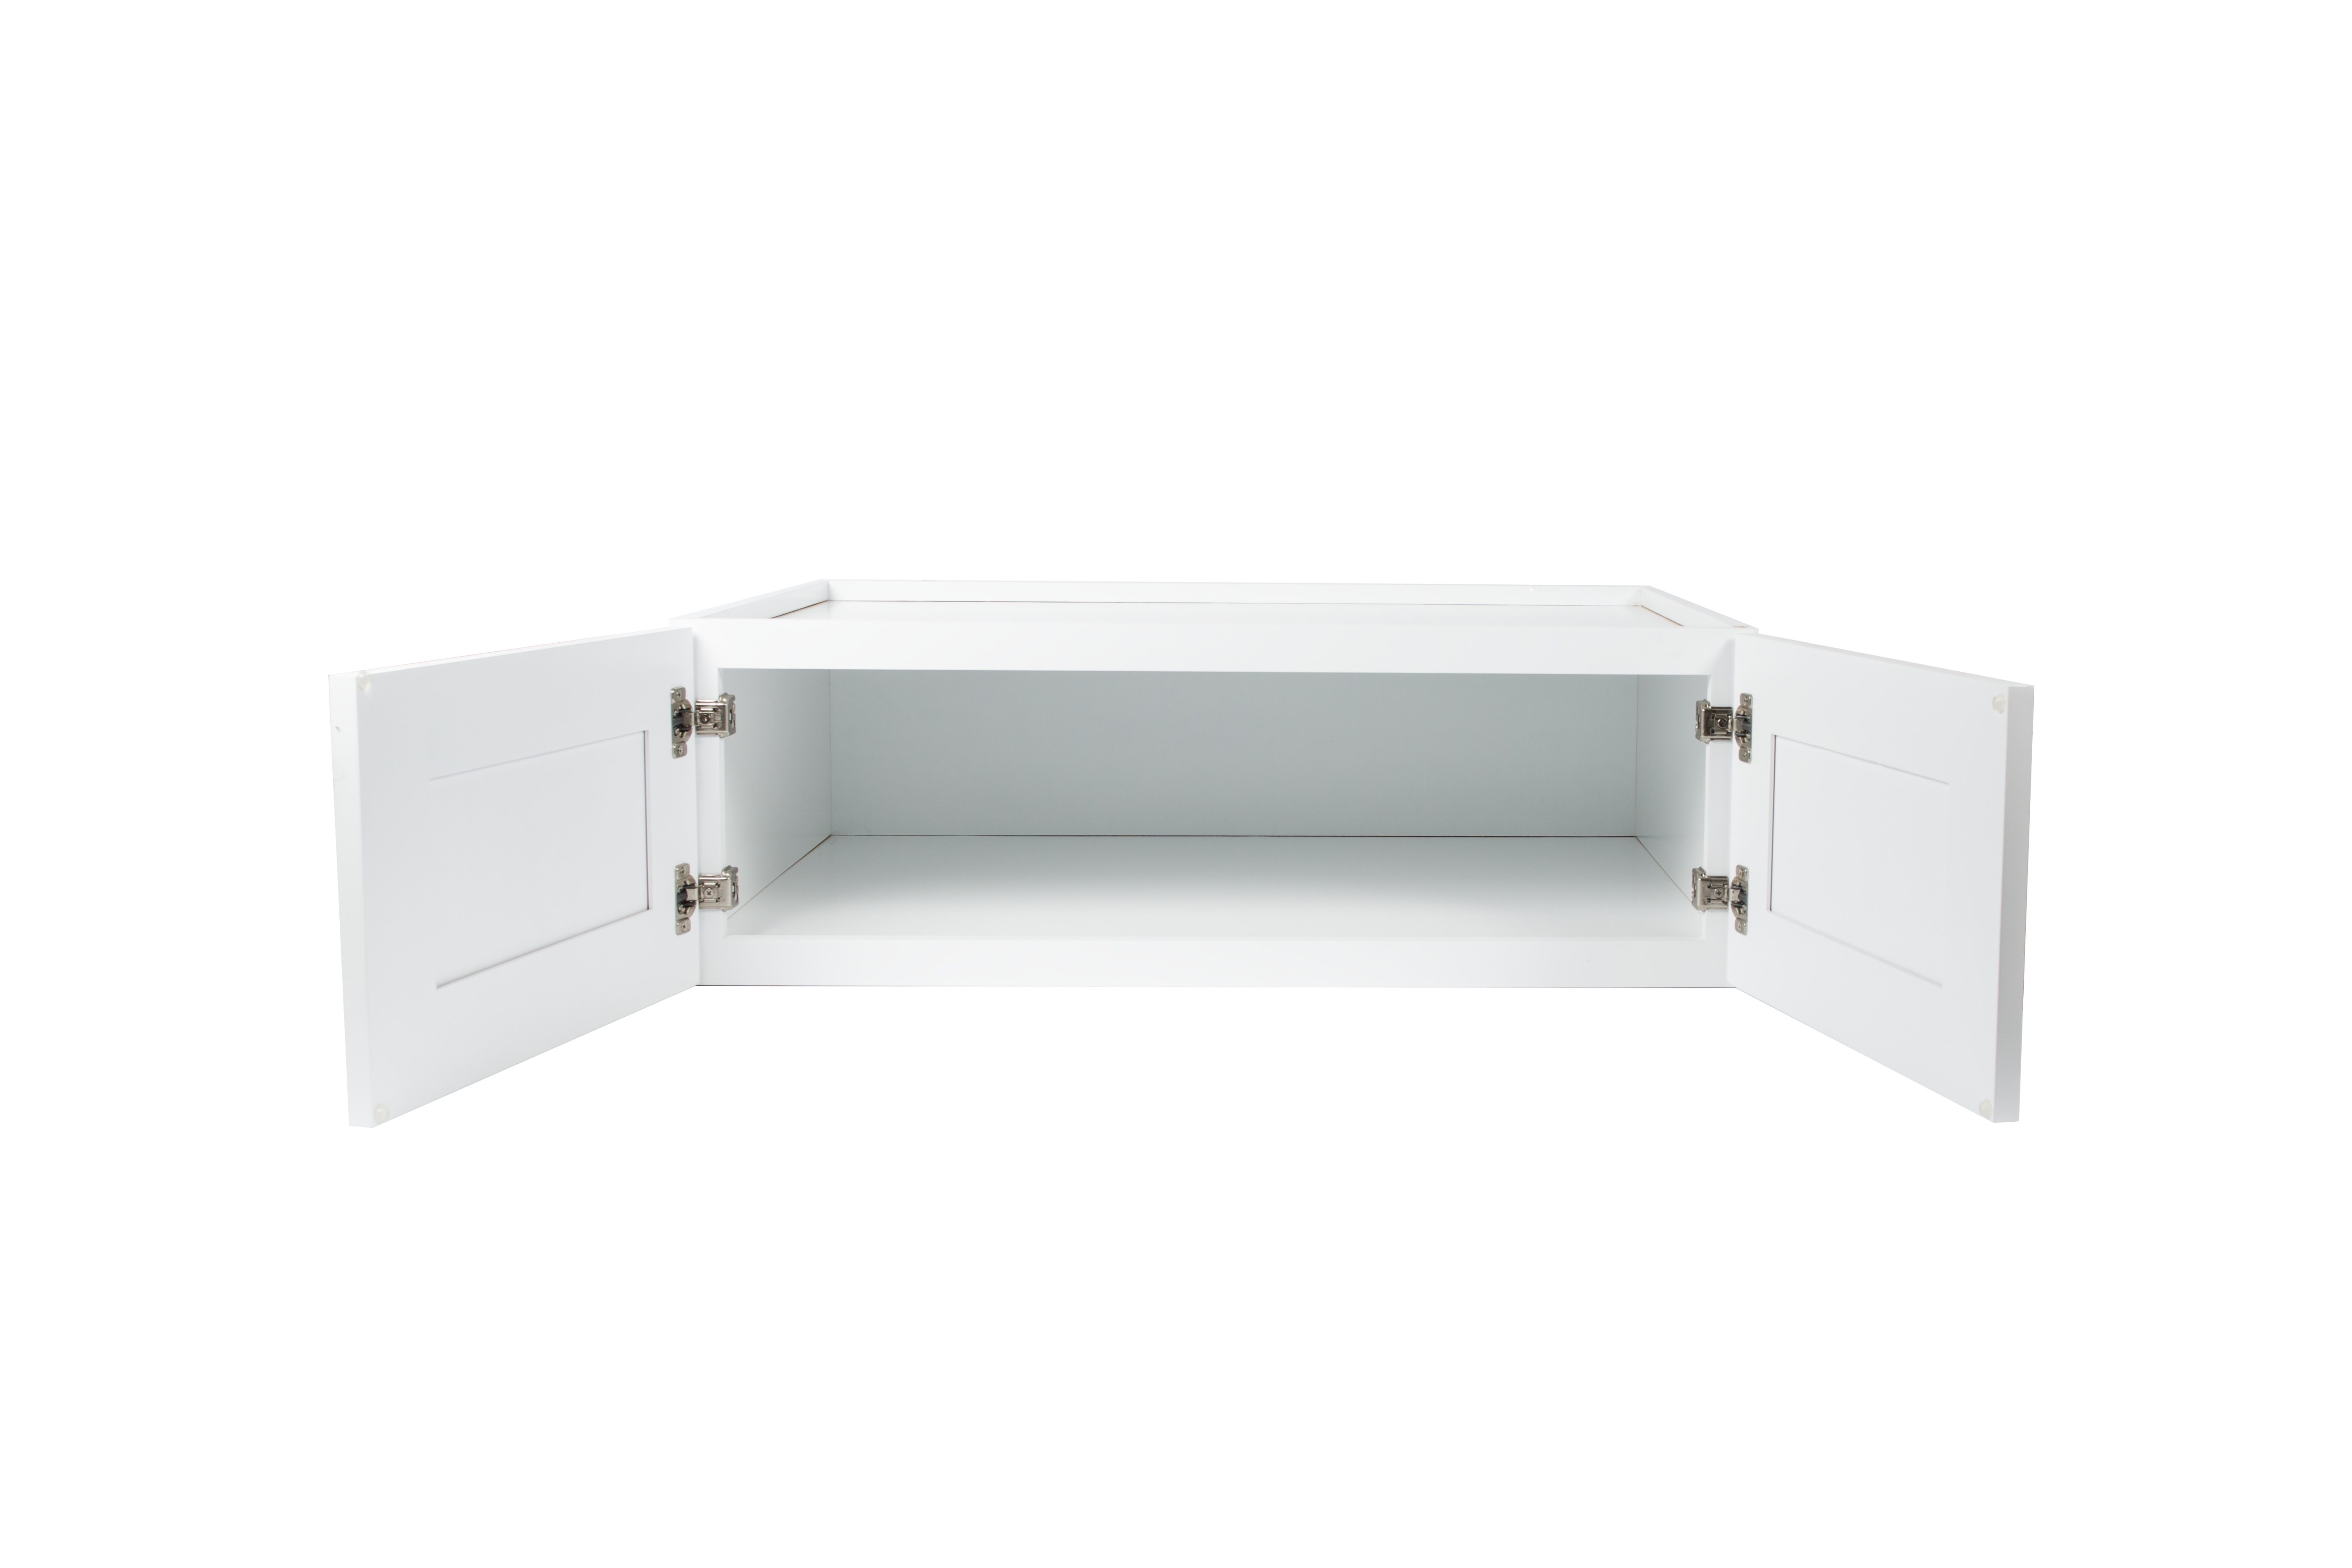 Ready to Assemble 30x24x24 in. Shaker High Double Door Wall Cabinet in White